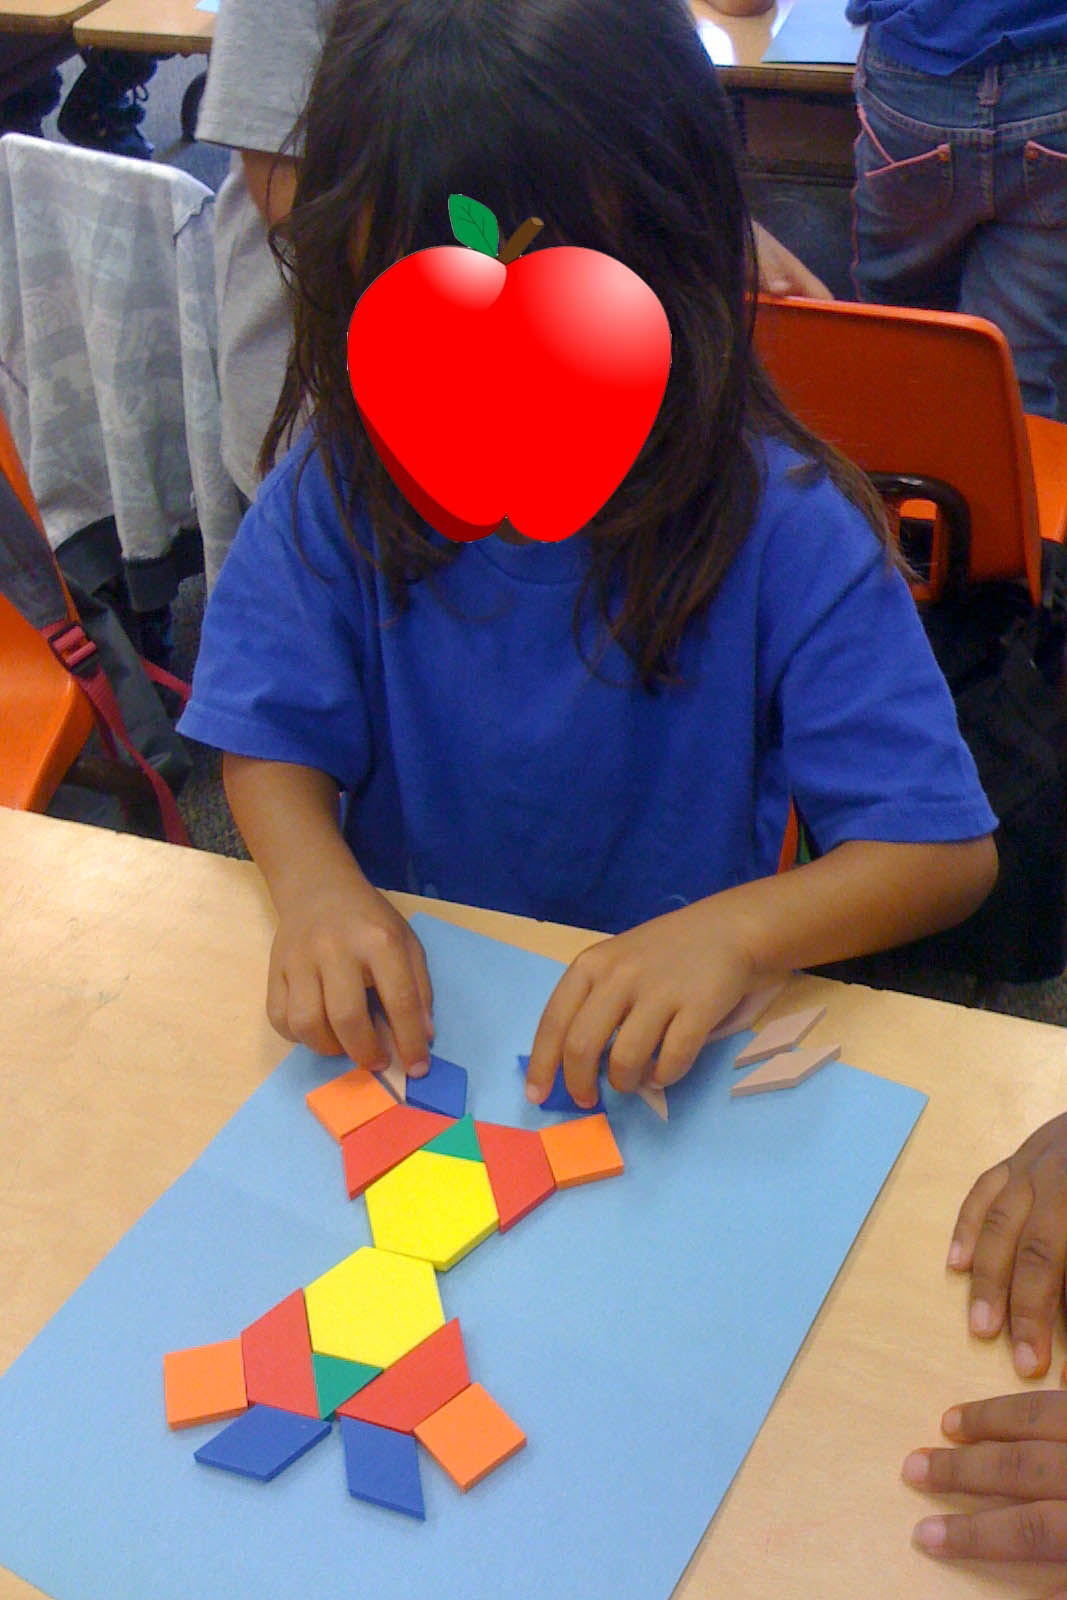 Dsc together with Origamic Architecture as well Dance Disco Clip Art Free likewise Picasso Self Portraits Kandinsky Circles as well Portrait. on art in kindergarten